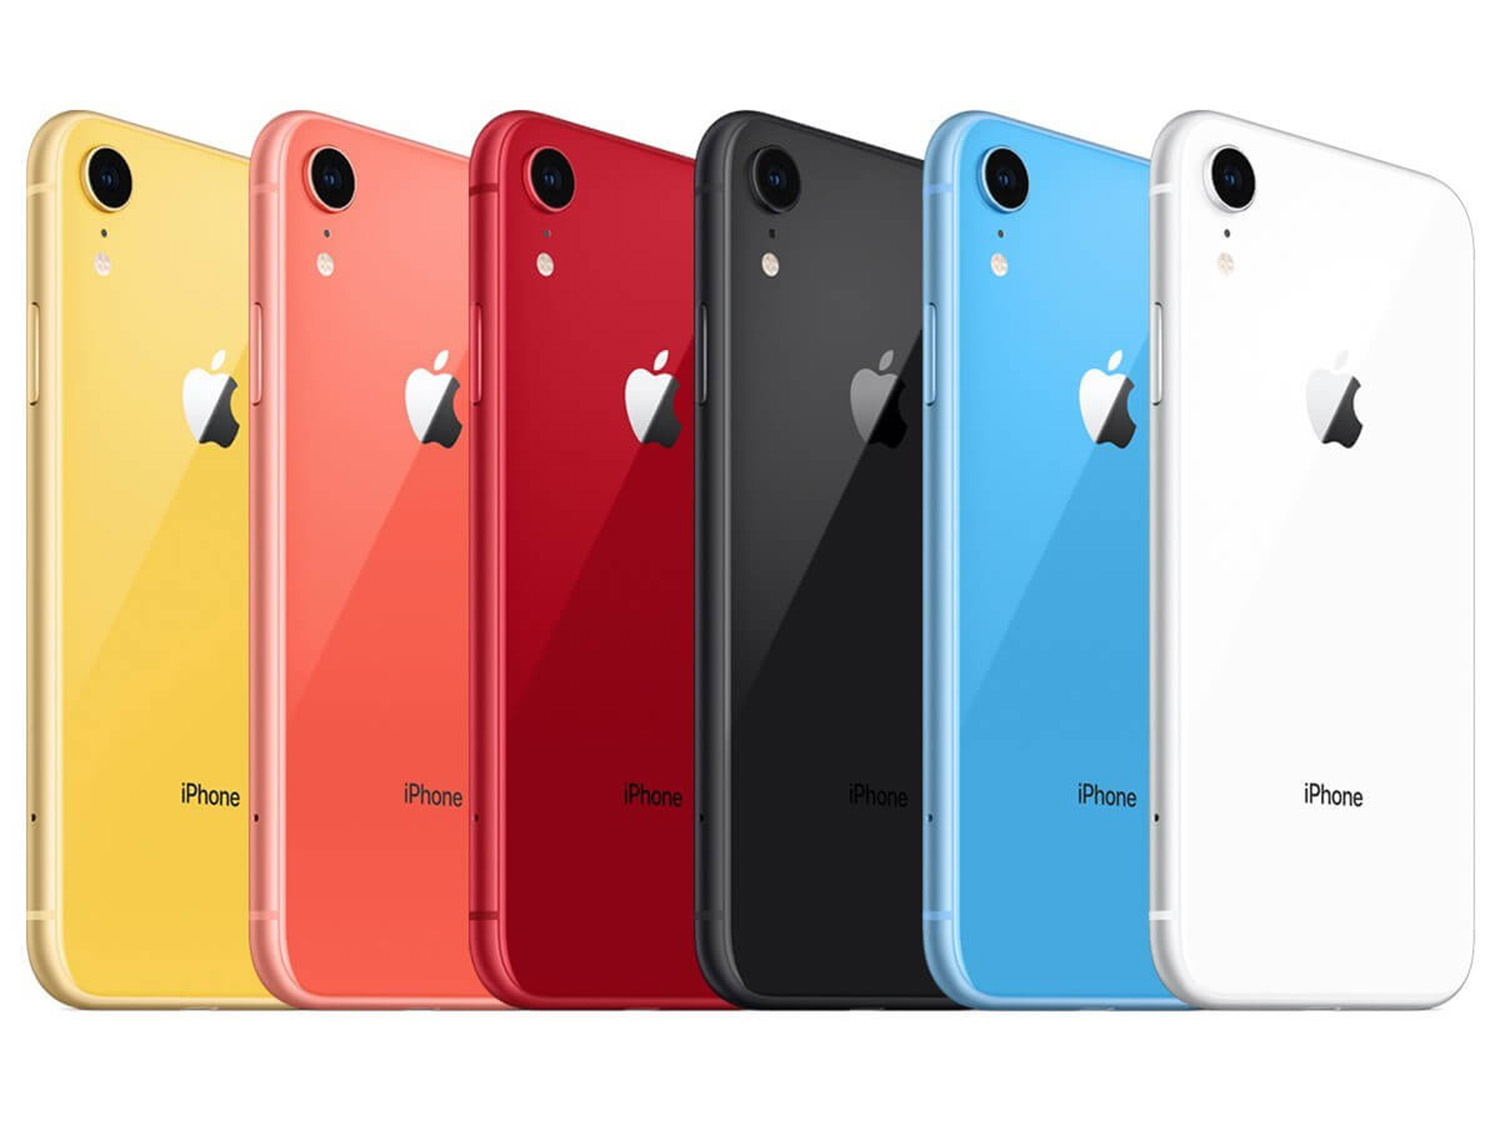 Apple's iPhone XR surpassed each other cell phone each quarter since launch